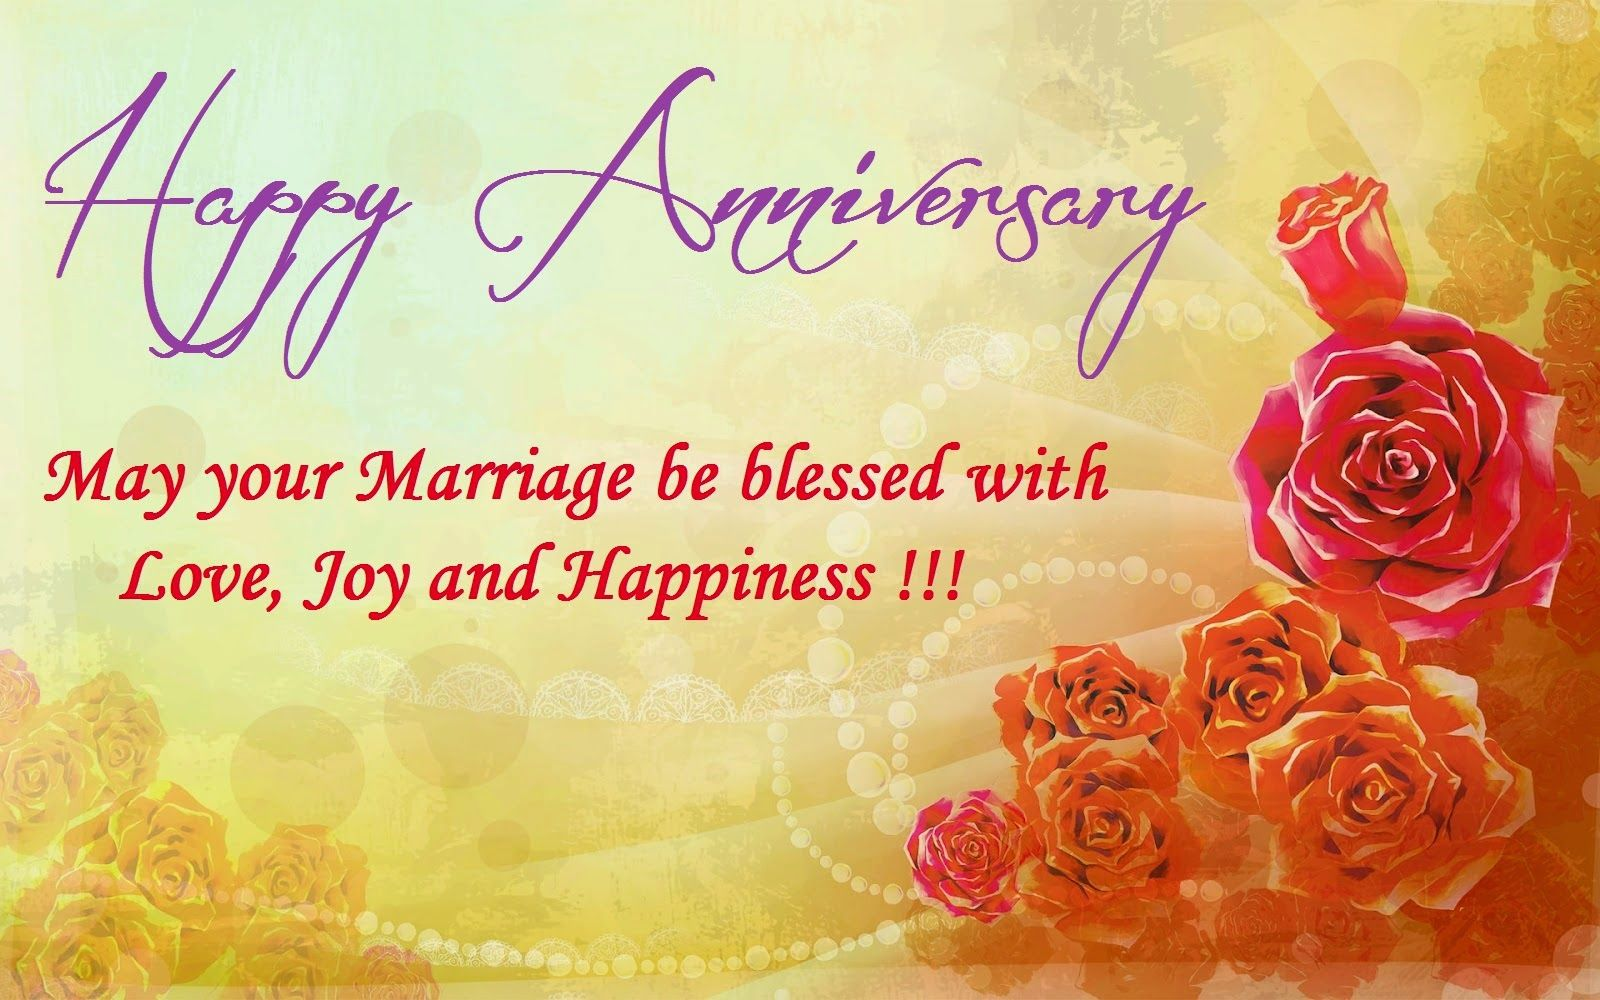 Wedding Anniversary greetings for wife, husband or couple